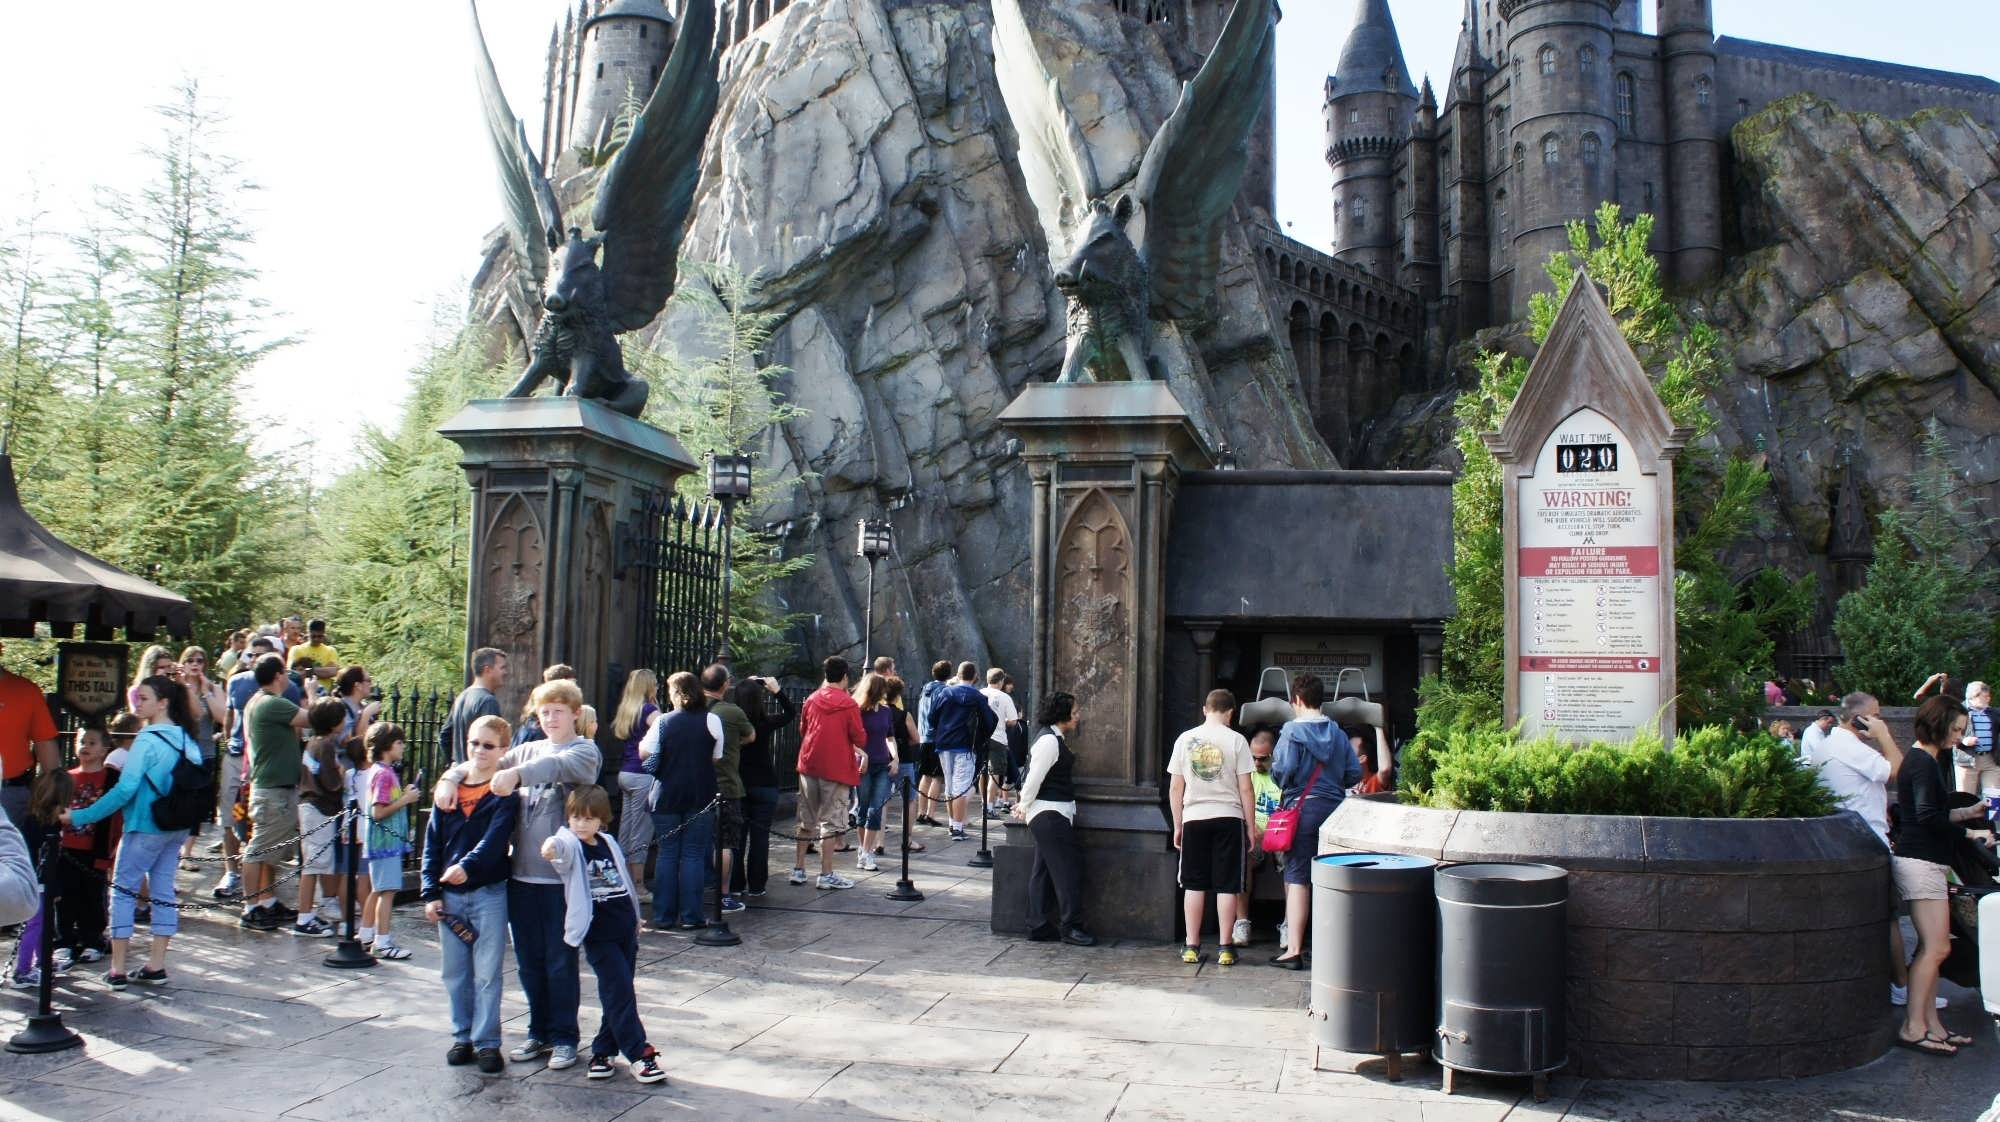 The line stretching out from the gates of Hogwarts Castle – seen on the left (1).